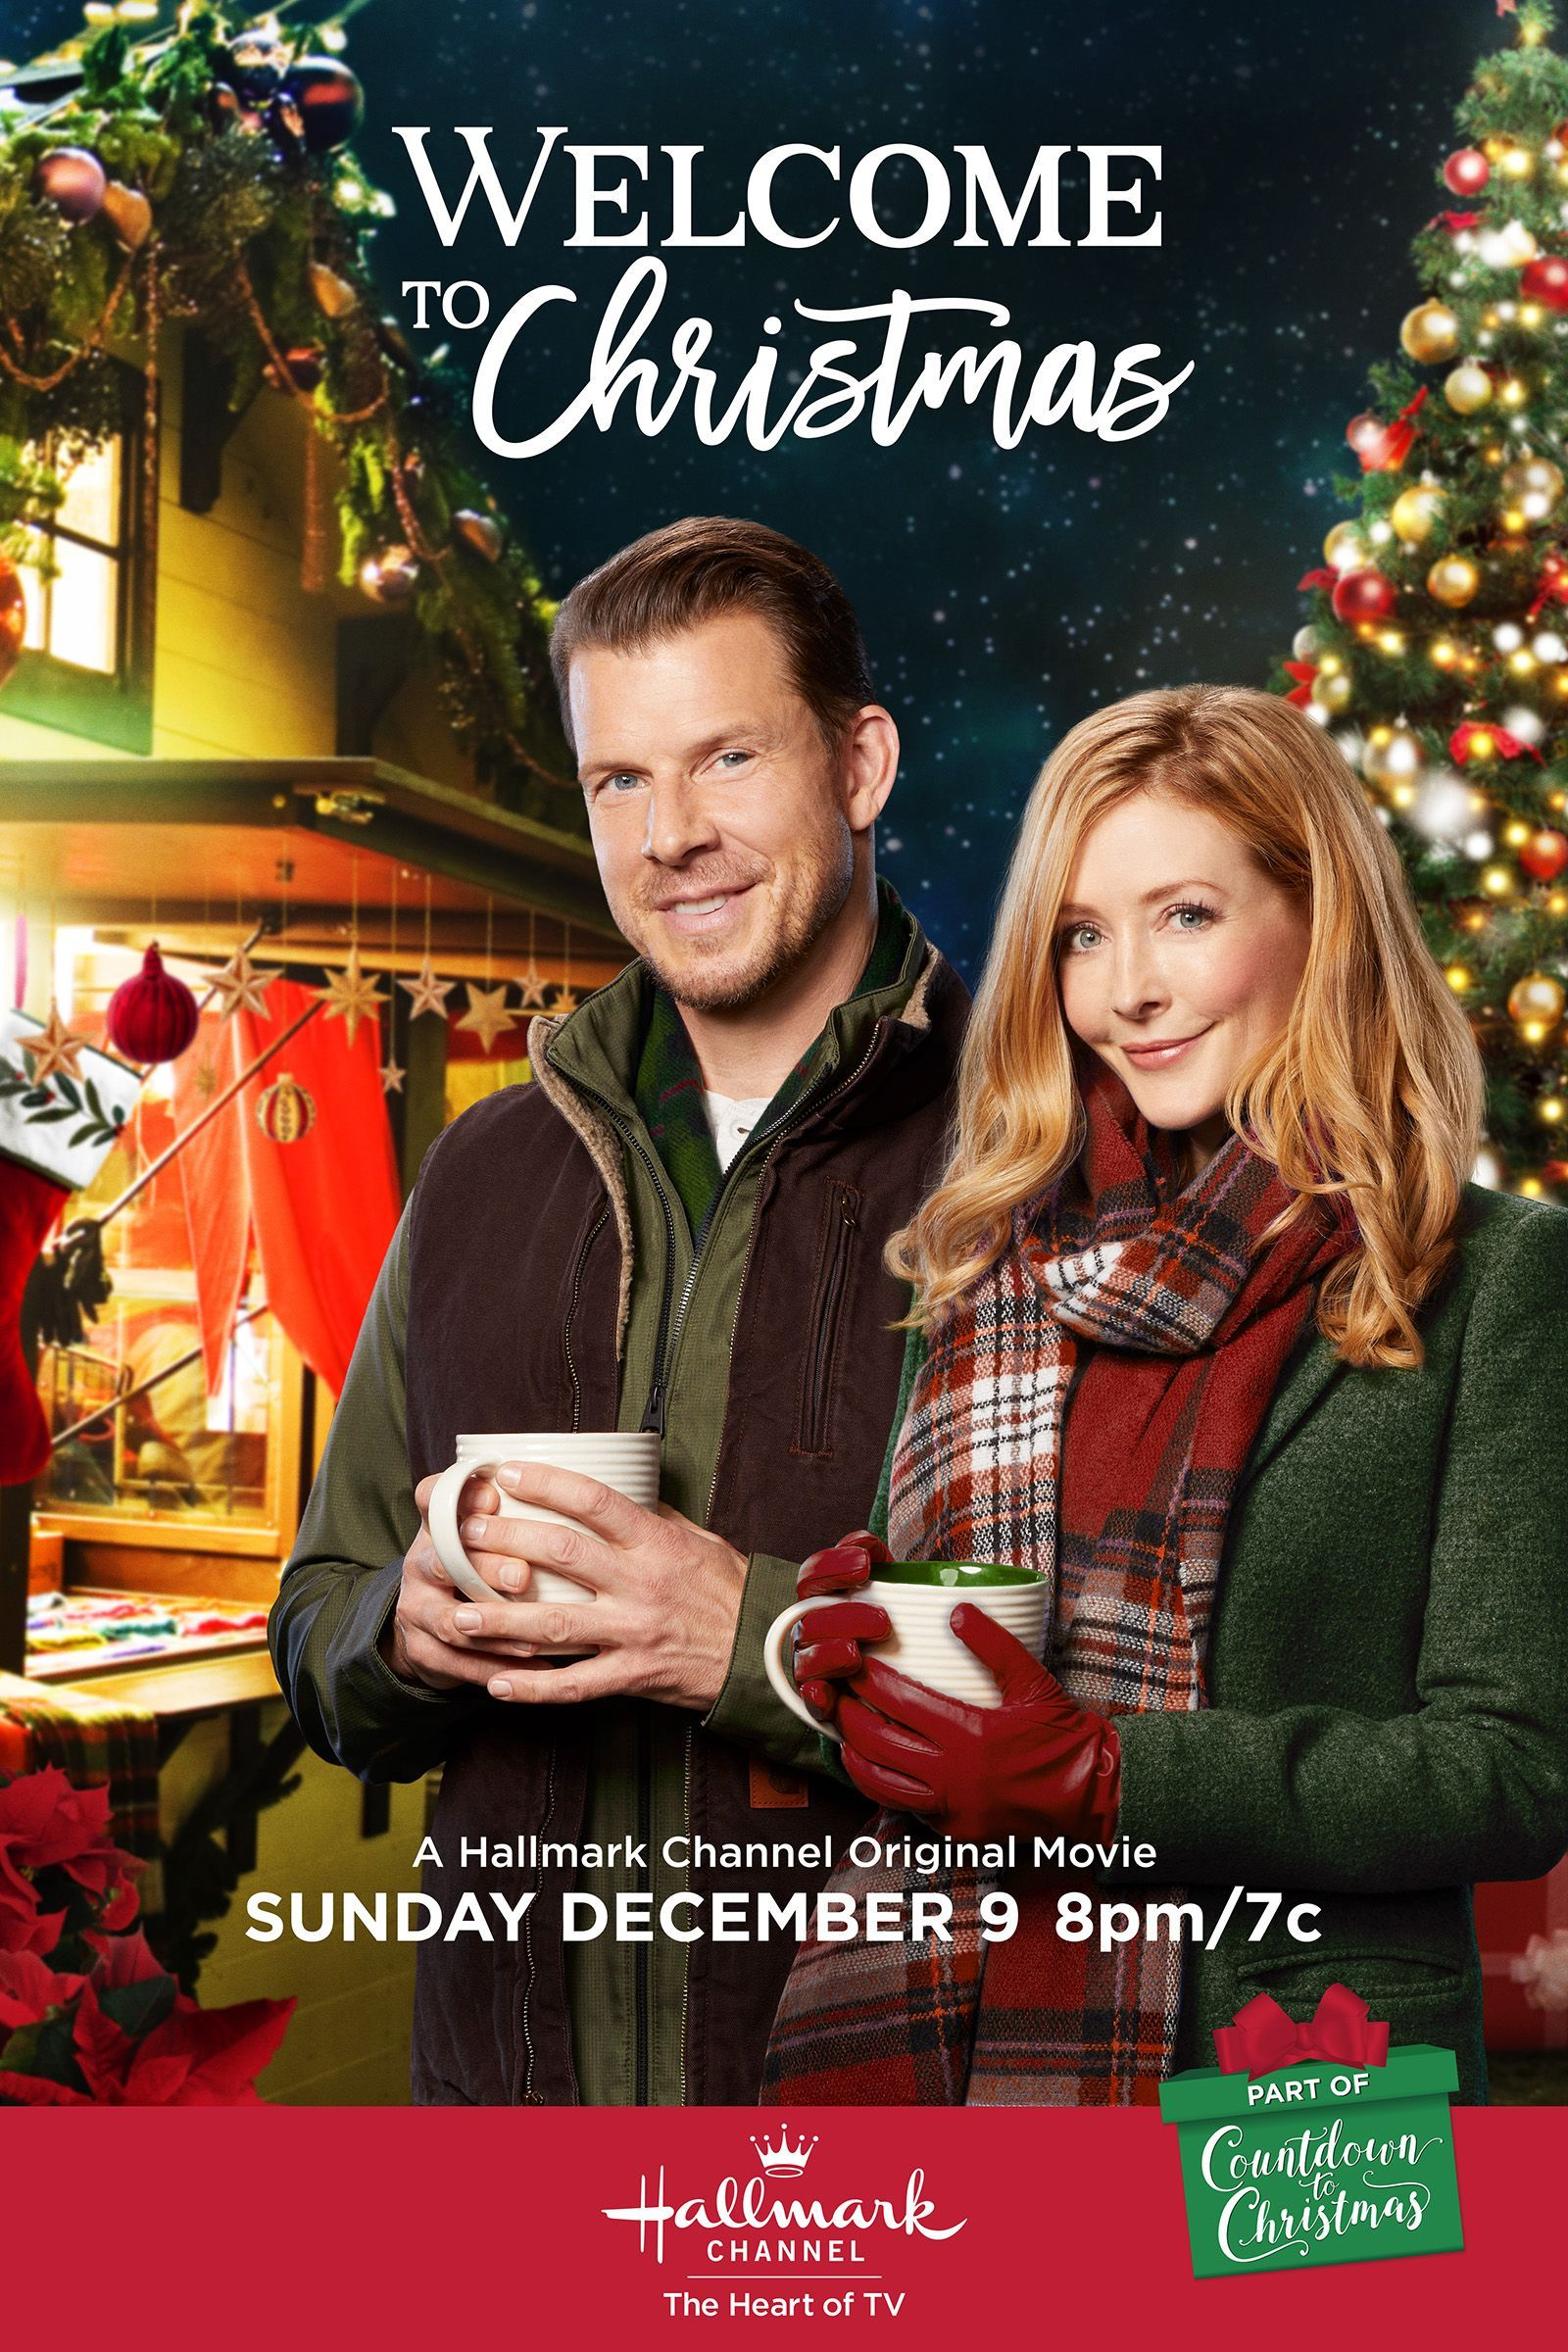 Welcome To Christmas 2020 Hallmark's 'Welcome to Christmas' Movie Was Filmed in a Real Life